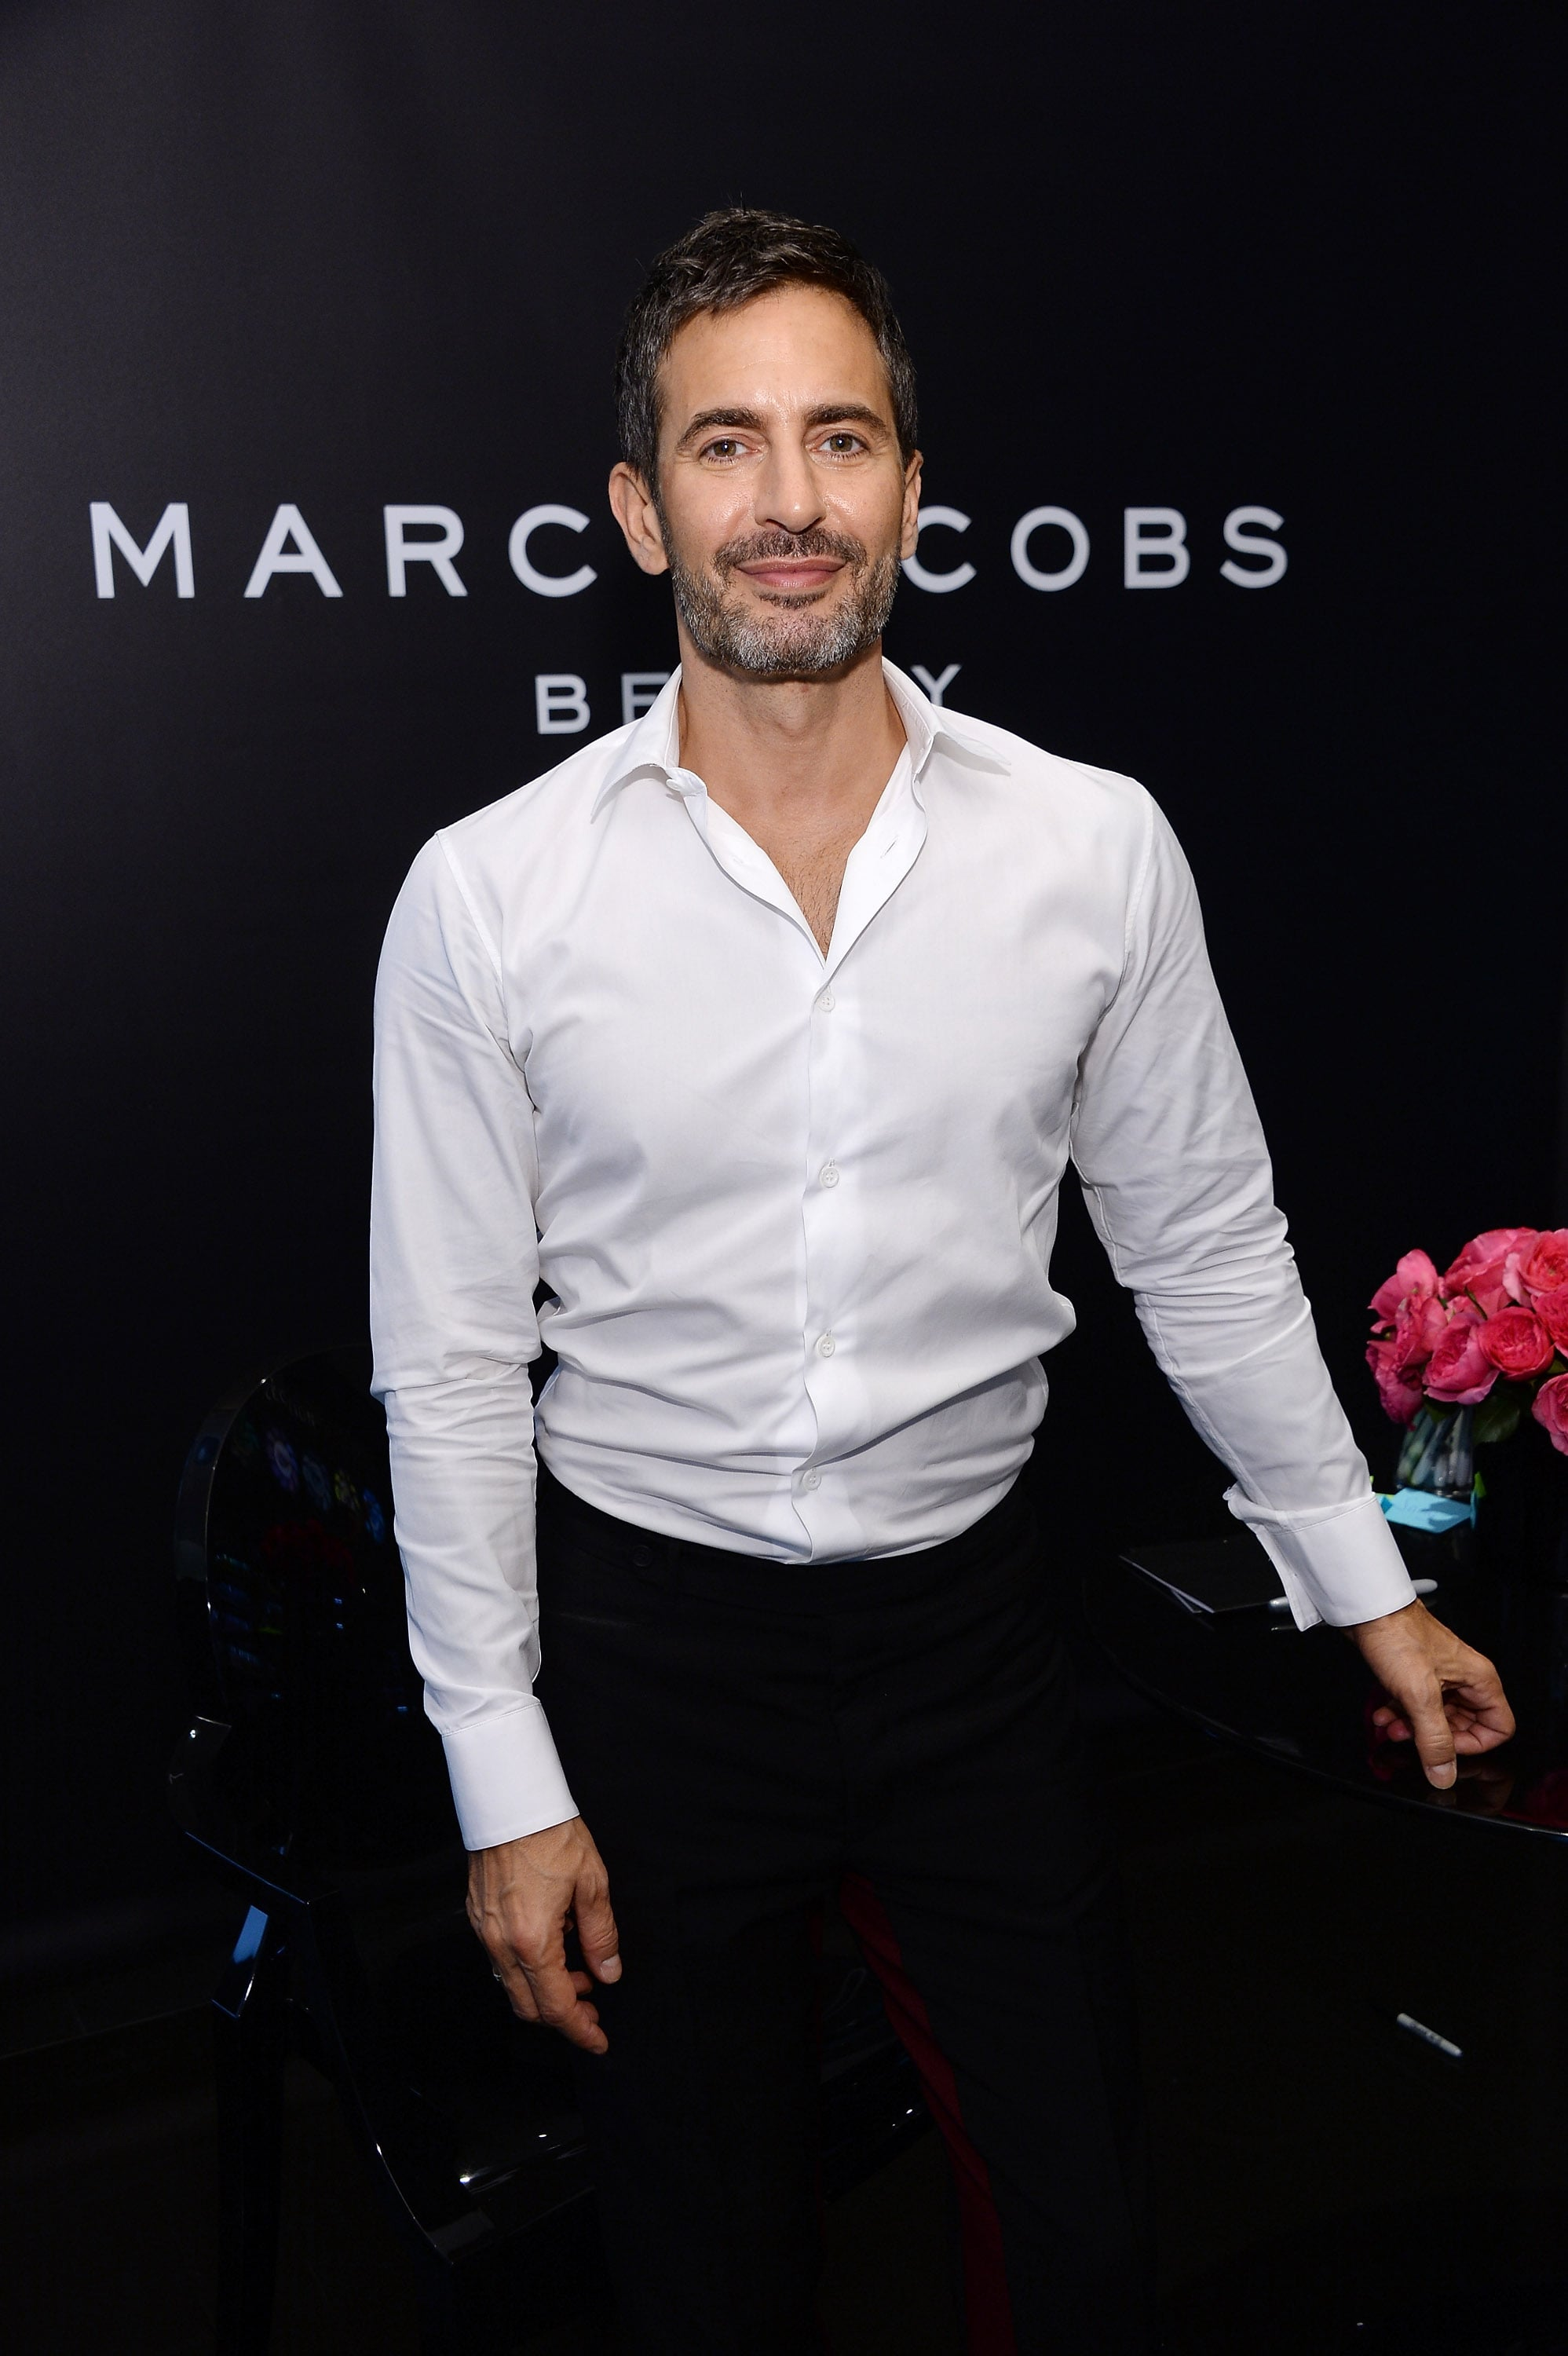 Marc Jacobs made an appearance at SoHo's Sephora to greet fans and debut his makeup collection.